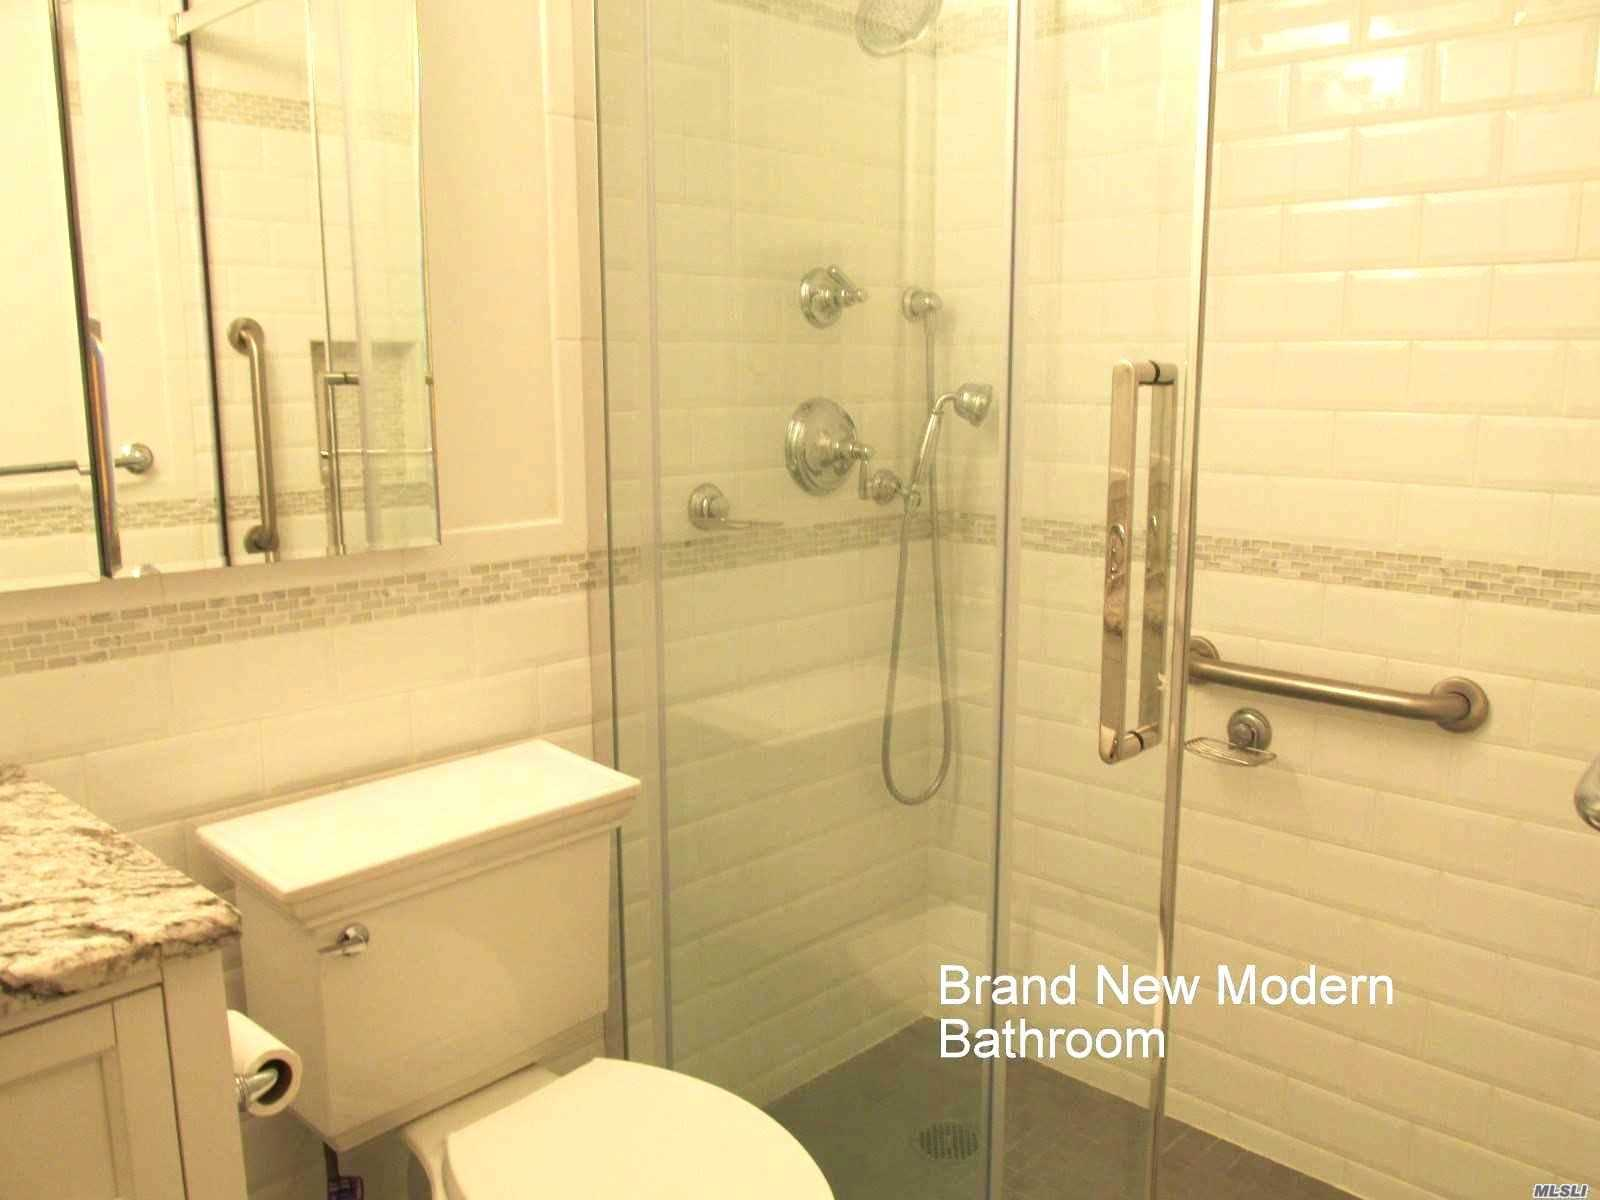 Largest One Bedroom With Formal Dining Room Plus Den Plus Double Terrace (Size Of A Two Bedroom); Brand New ($20, 000.00) White/Grey Top Of Line Bathroom; Closets Galore 2 Walk In's); Granite Kitchen; This Is Largest One Bedroom With Direct Pond View; Priced To Sell. Year Round Health/Fitness Club; Shopping Arcade; Restaurant On Premises; Deli, Beauty Salon, Dry Cleaners, Pool, Tennis Courts Plus Much More; Near Transportation And Shopping Center - A Must See.